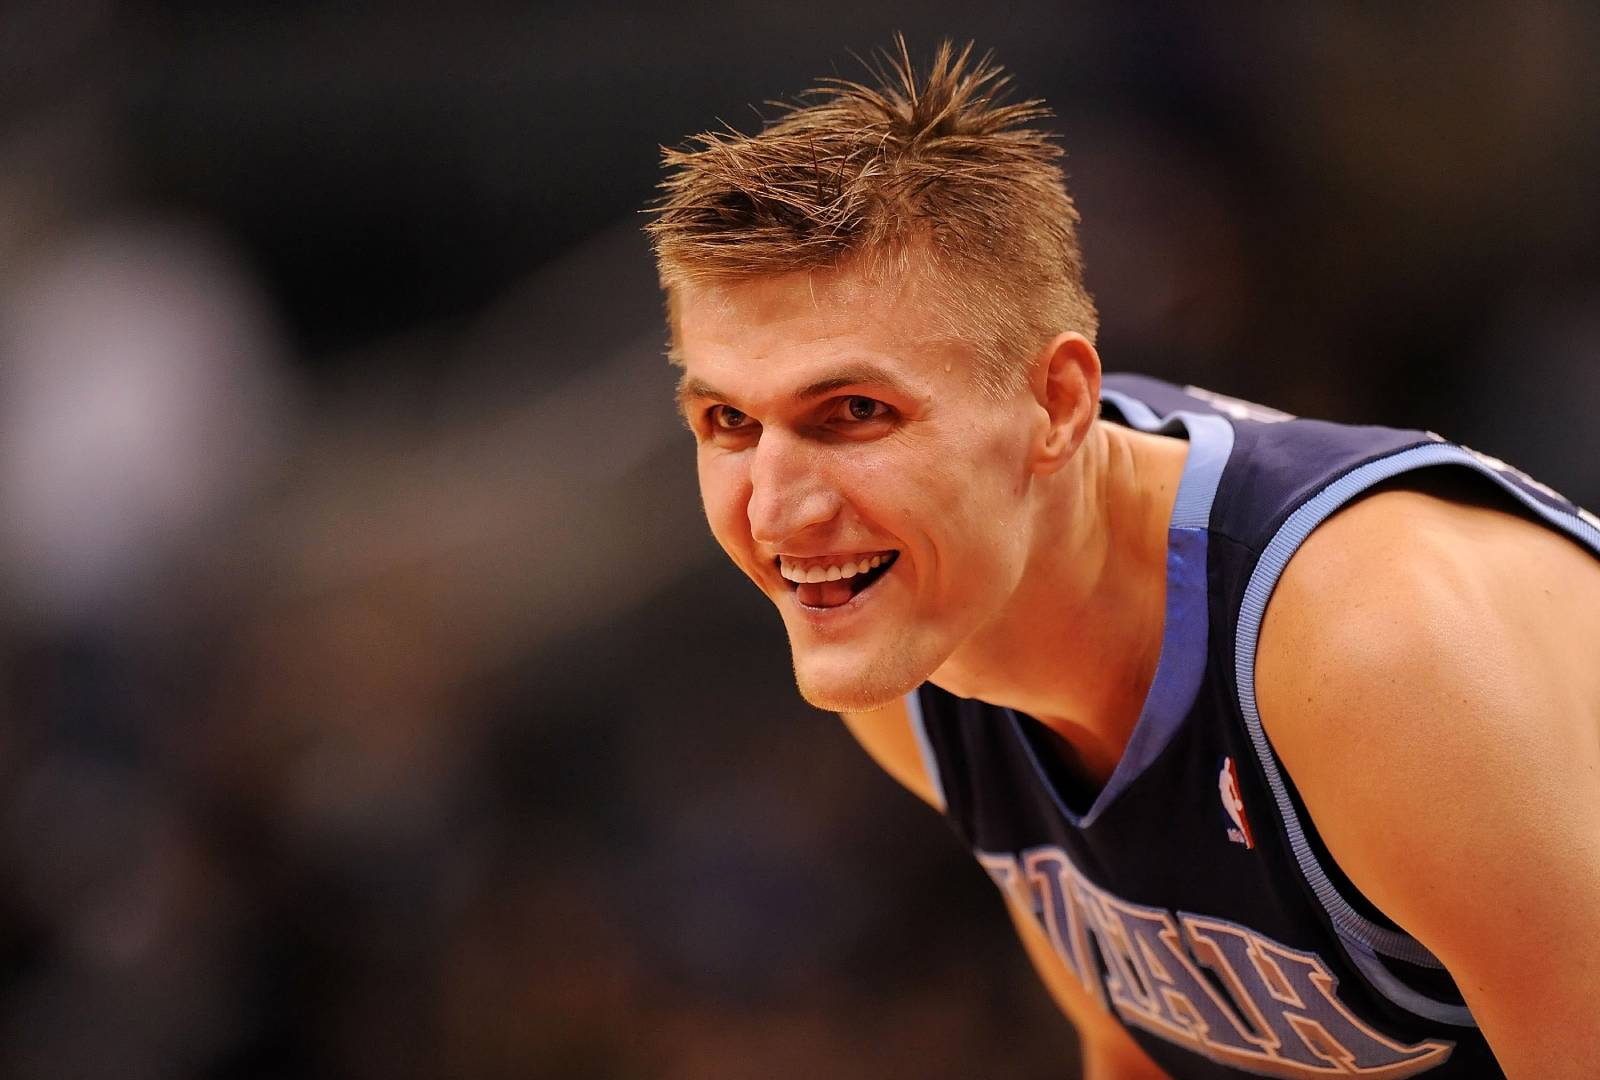 Former NBA All-Star Andrei Kirilenko tattooed his 'World of Warcraft' avatar on his back.